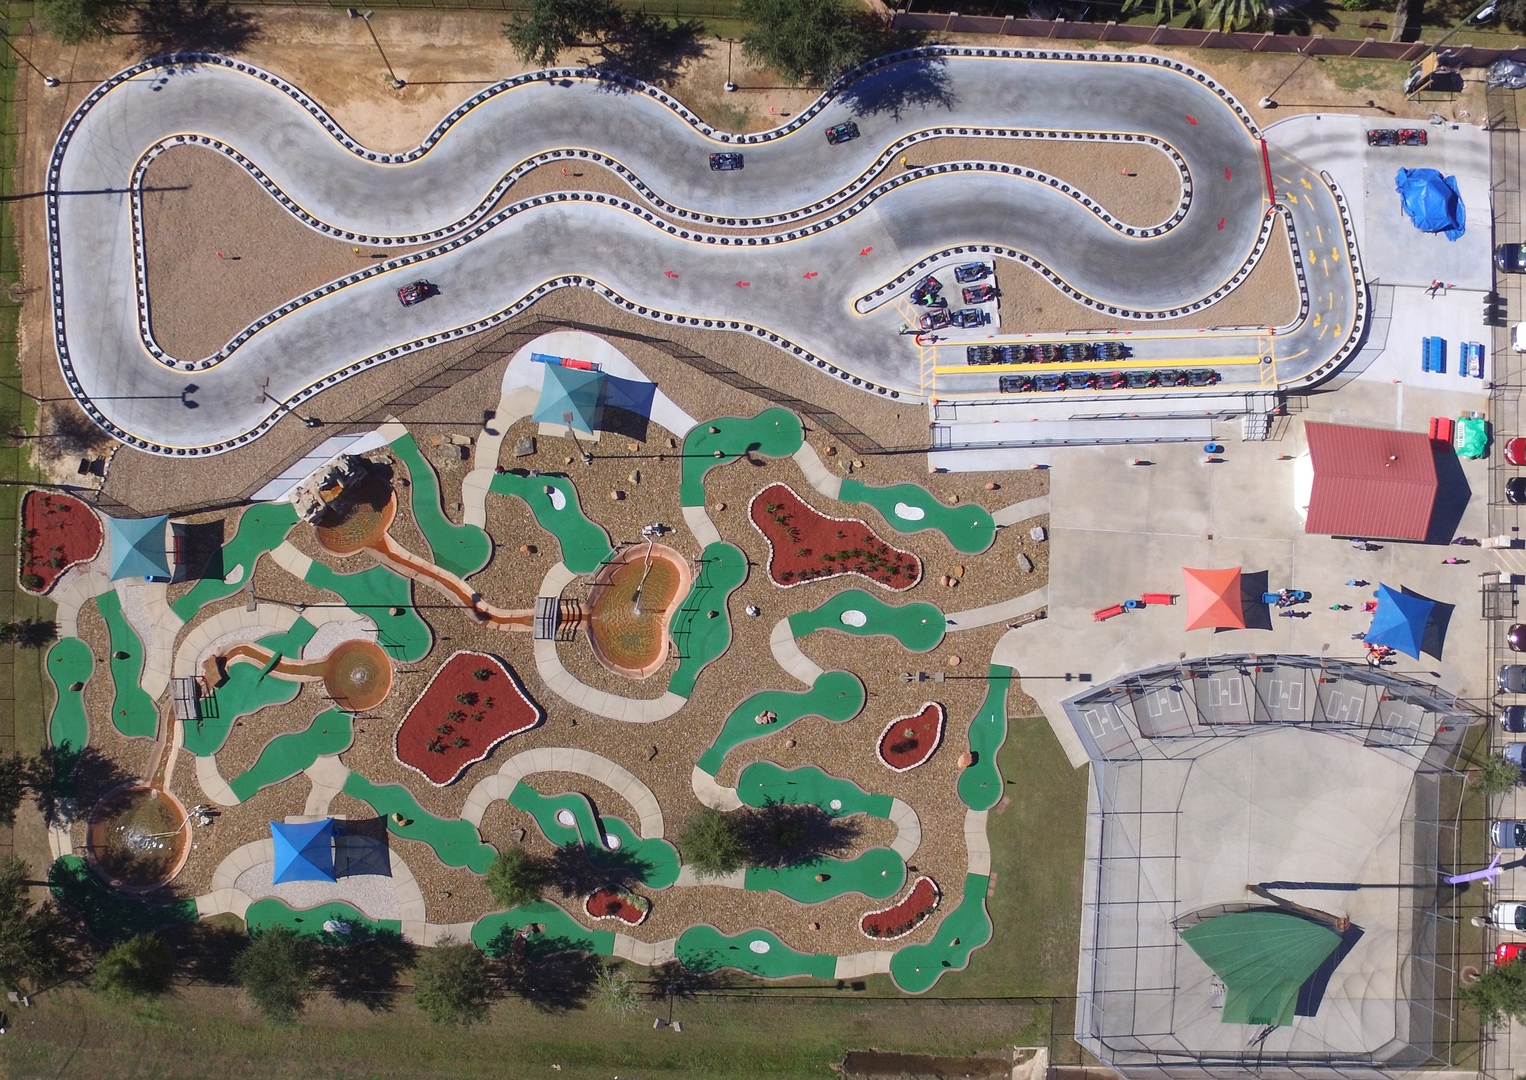 Mini Golf: Katy, Tx Inflatables Miniature Golf, Batting Cages & Go on dog rally course design, obstacle course design, show jumping course design, shooting course design, miniature golfing, culinary arts kitchen design, softball course design, miniature putting green, miniature home, putting course design, 3d archery course design, cross country running course design, croquet course design, paintball course design, equestrian course design, sporting clay course design, rafting course design, zip line tower design, putt-putt course design, laser tag course design,